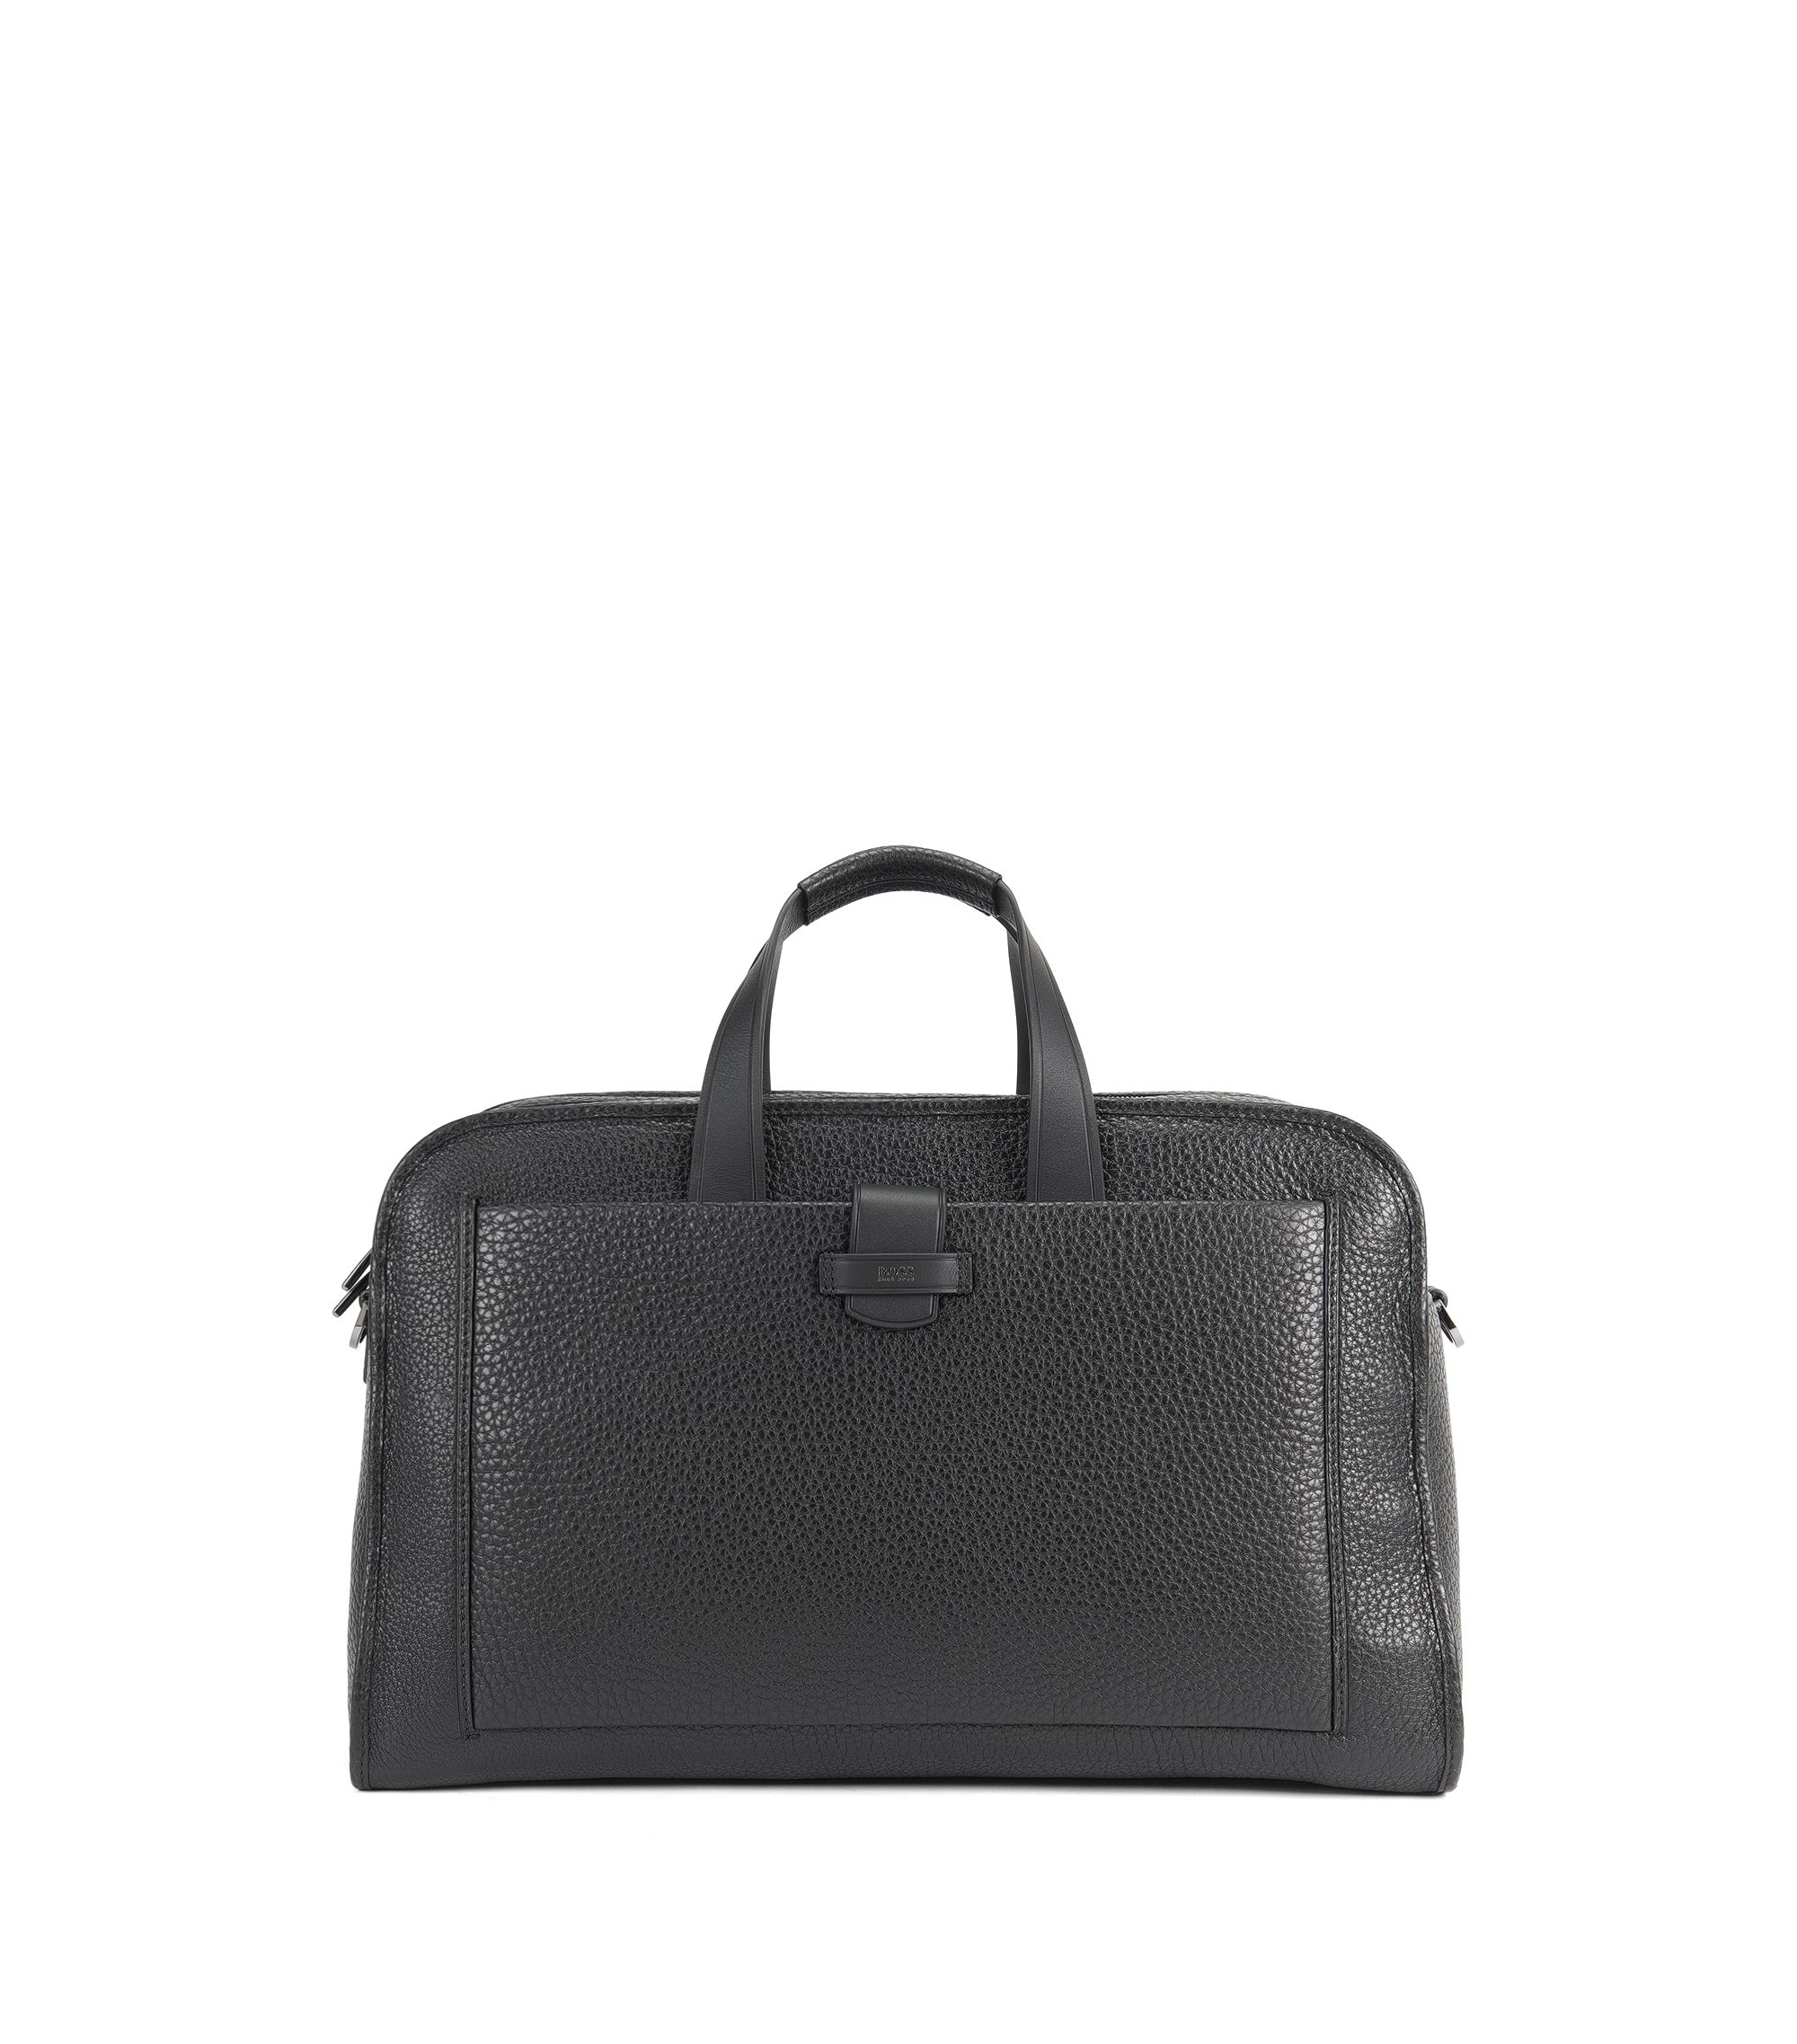 Weekend bag in grained leather, Black